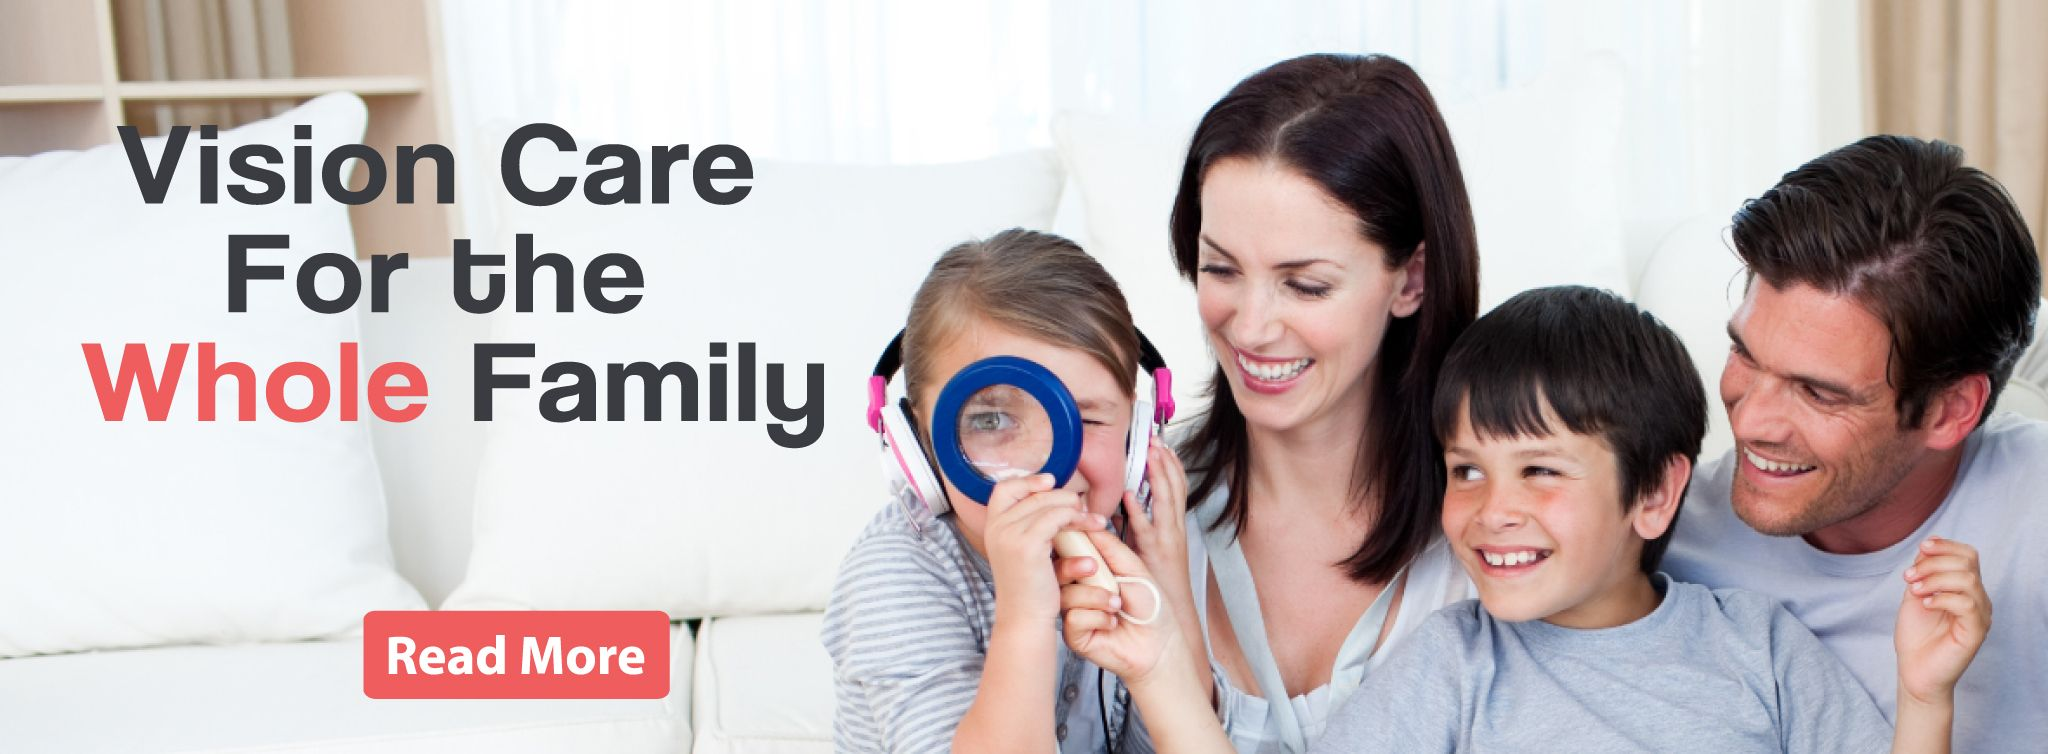 <span>Vision Care</span> For the Whole Family